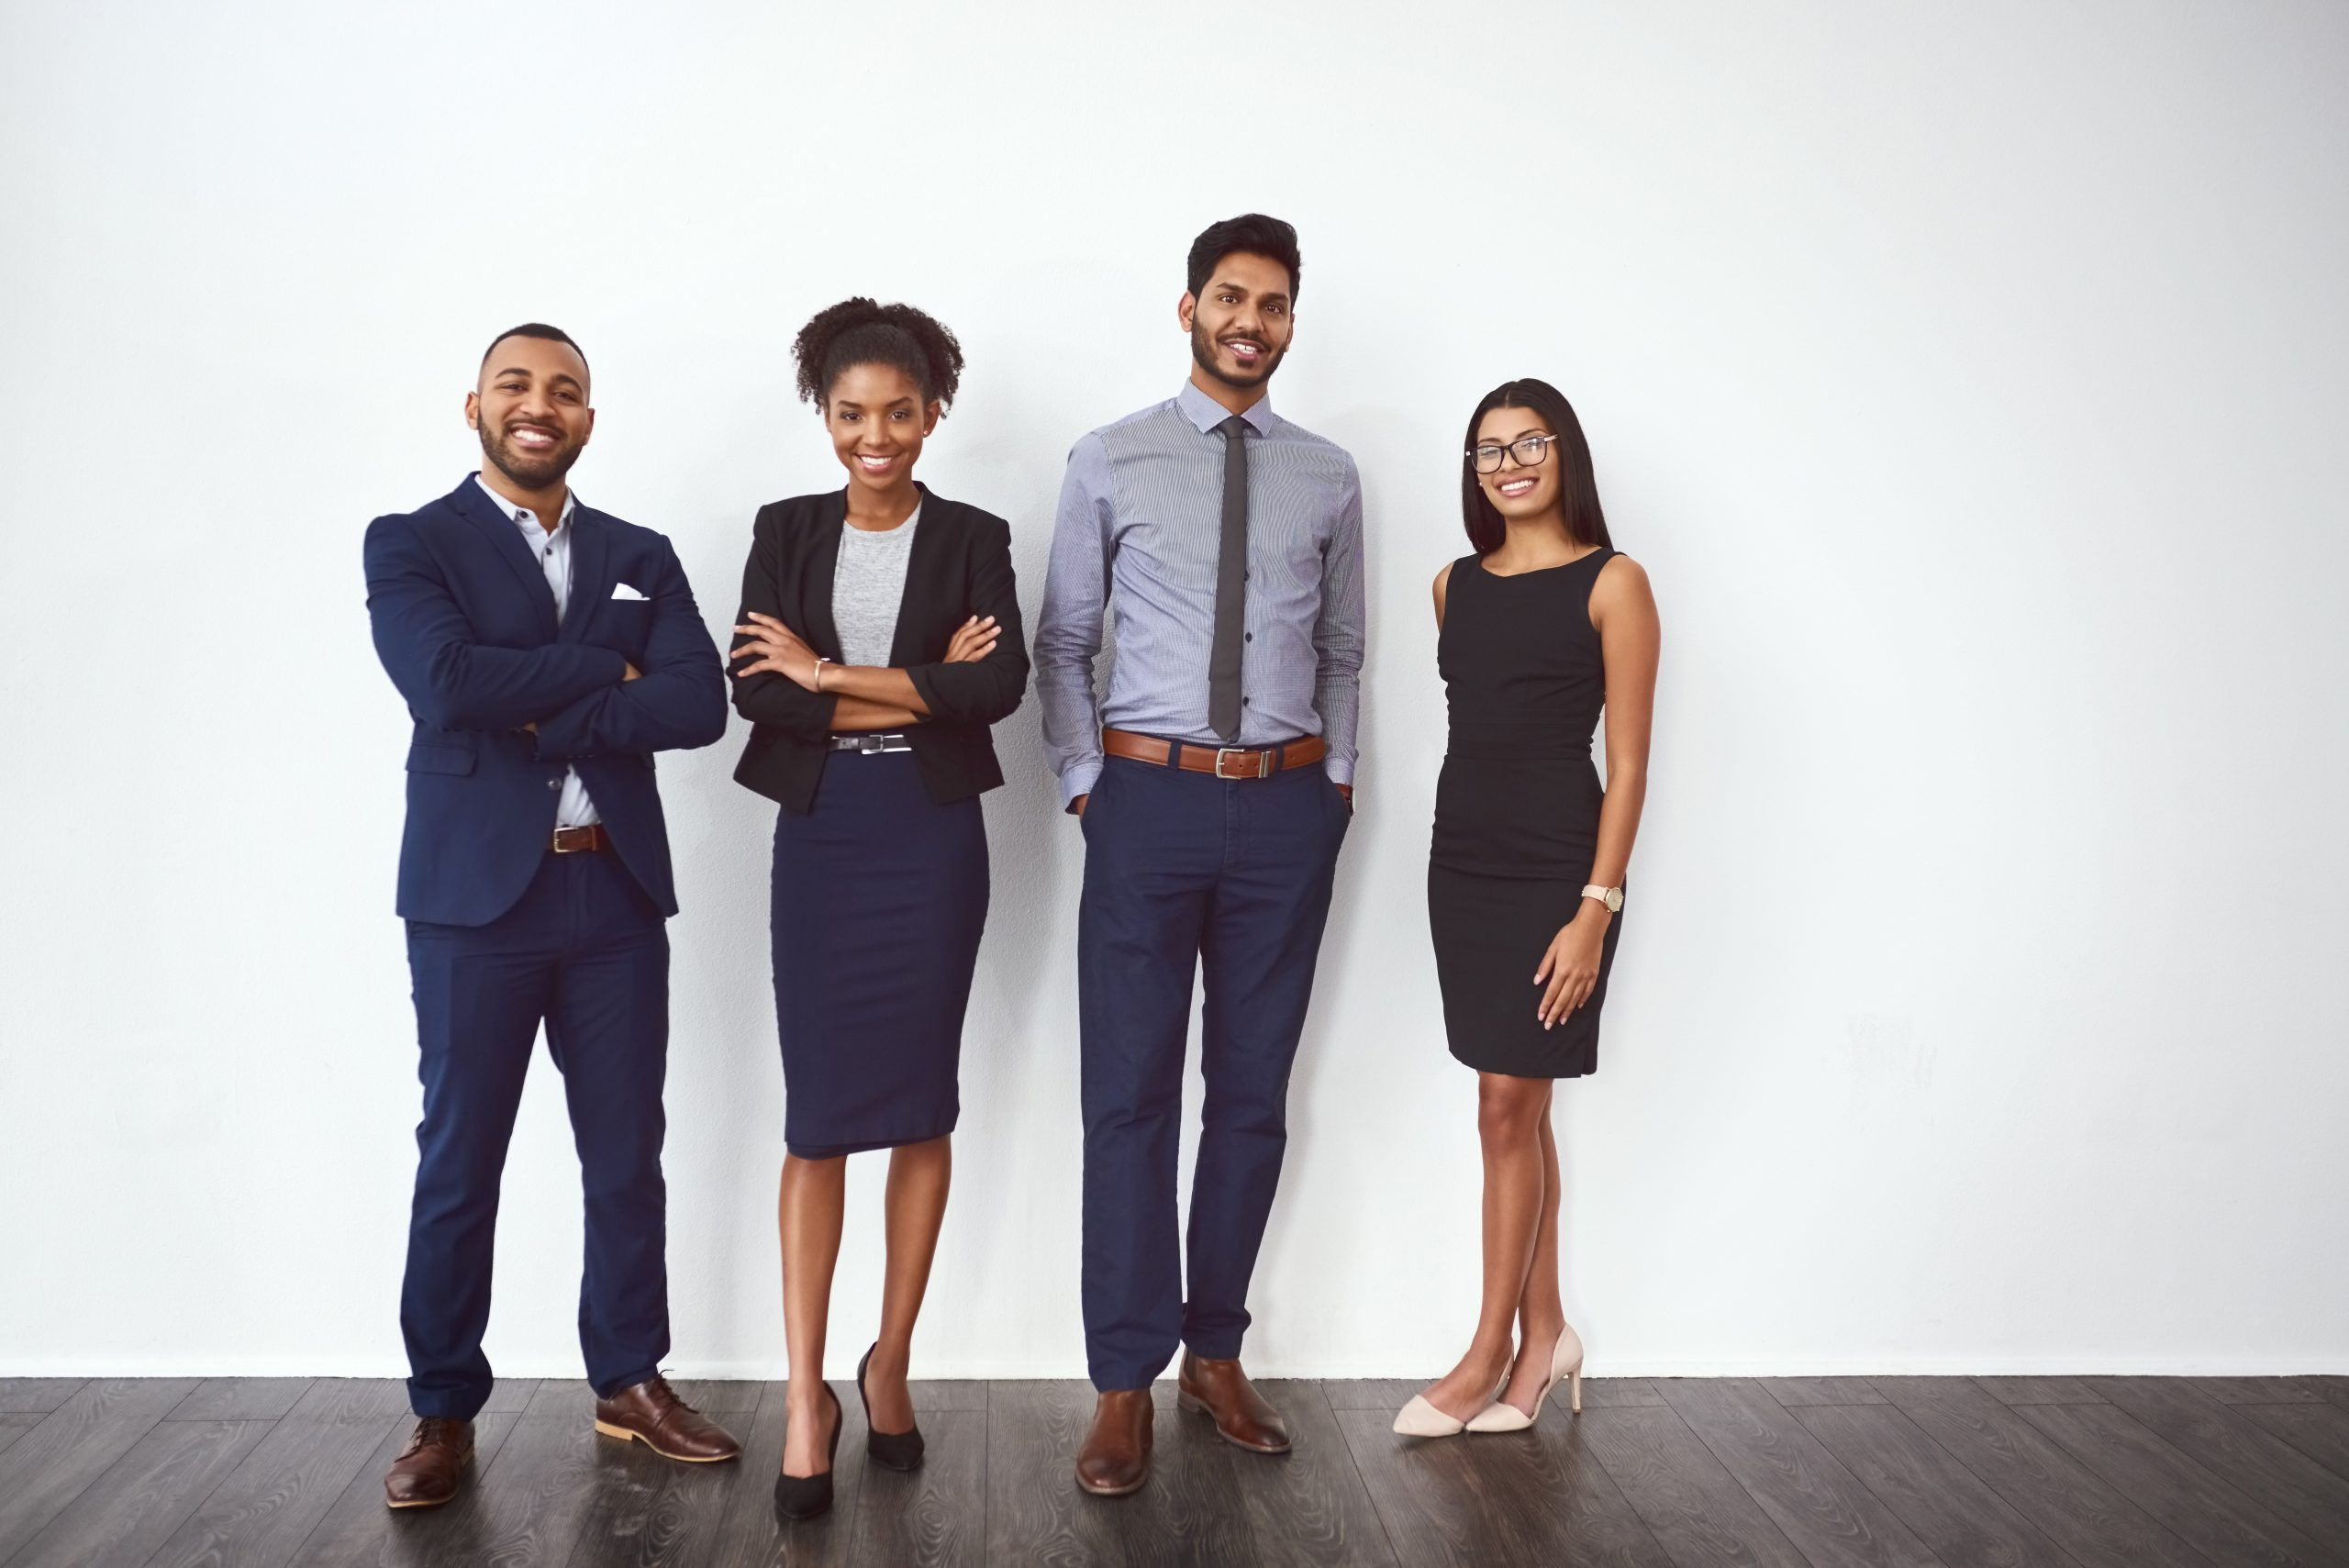 Studio portrait of a group of confident young businesspeople posing against a gray background